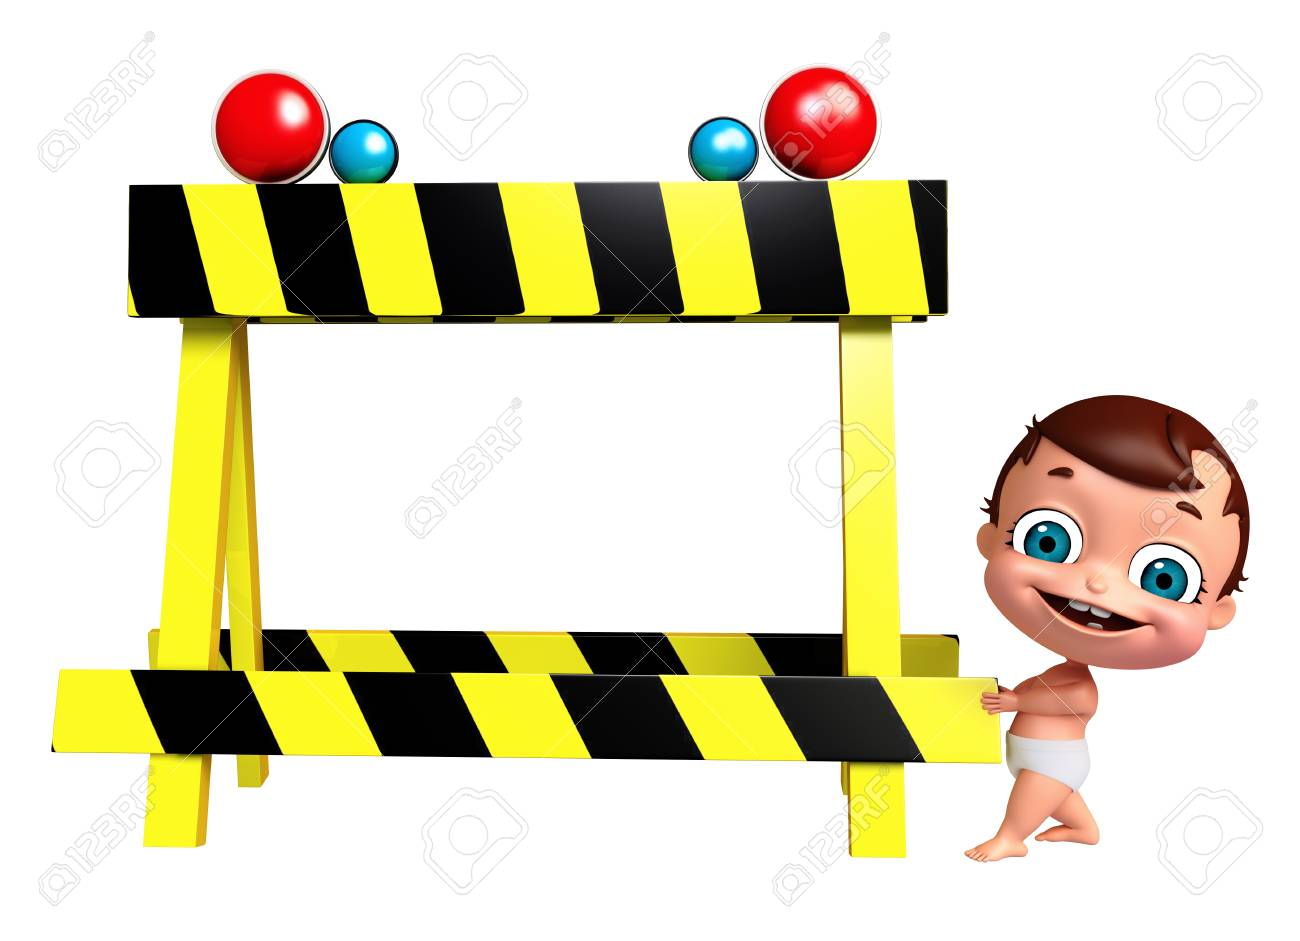 3d Render Of Baby With Barricade Stock Photo Picture And Royalty